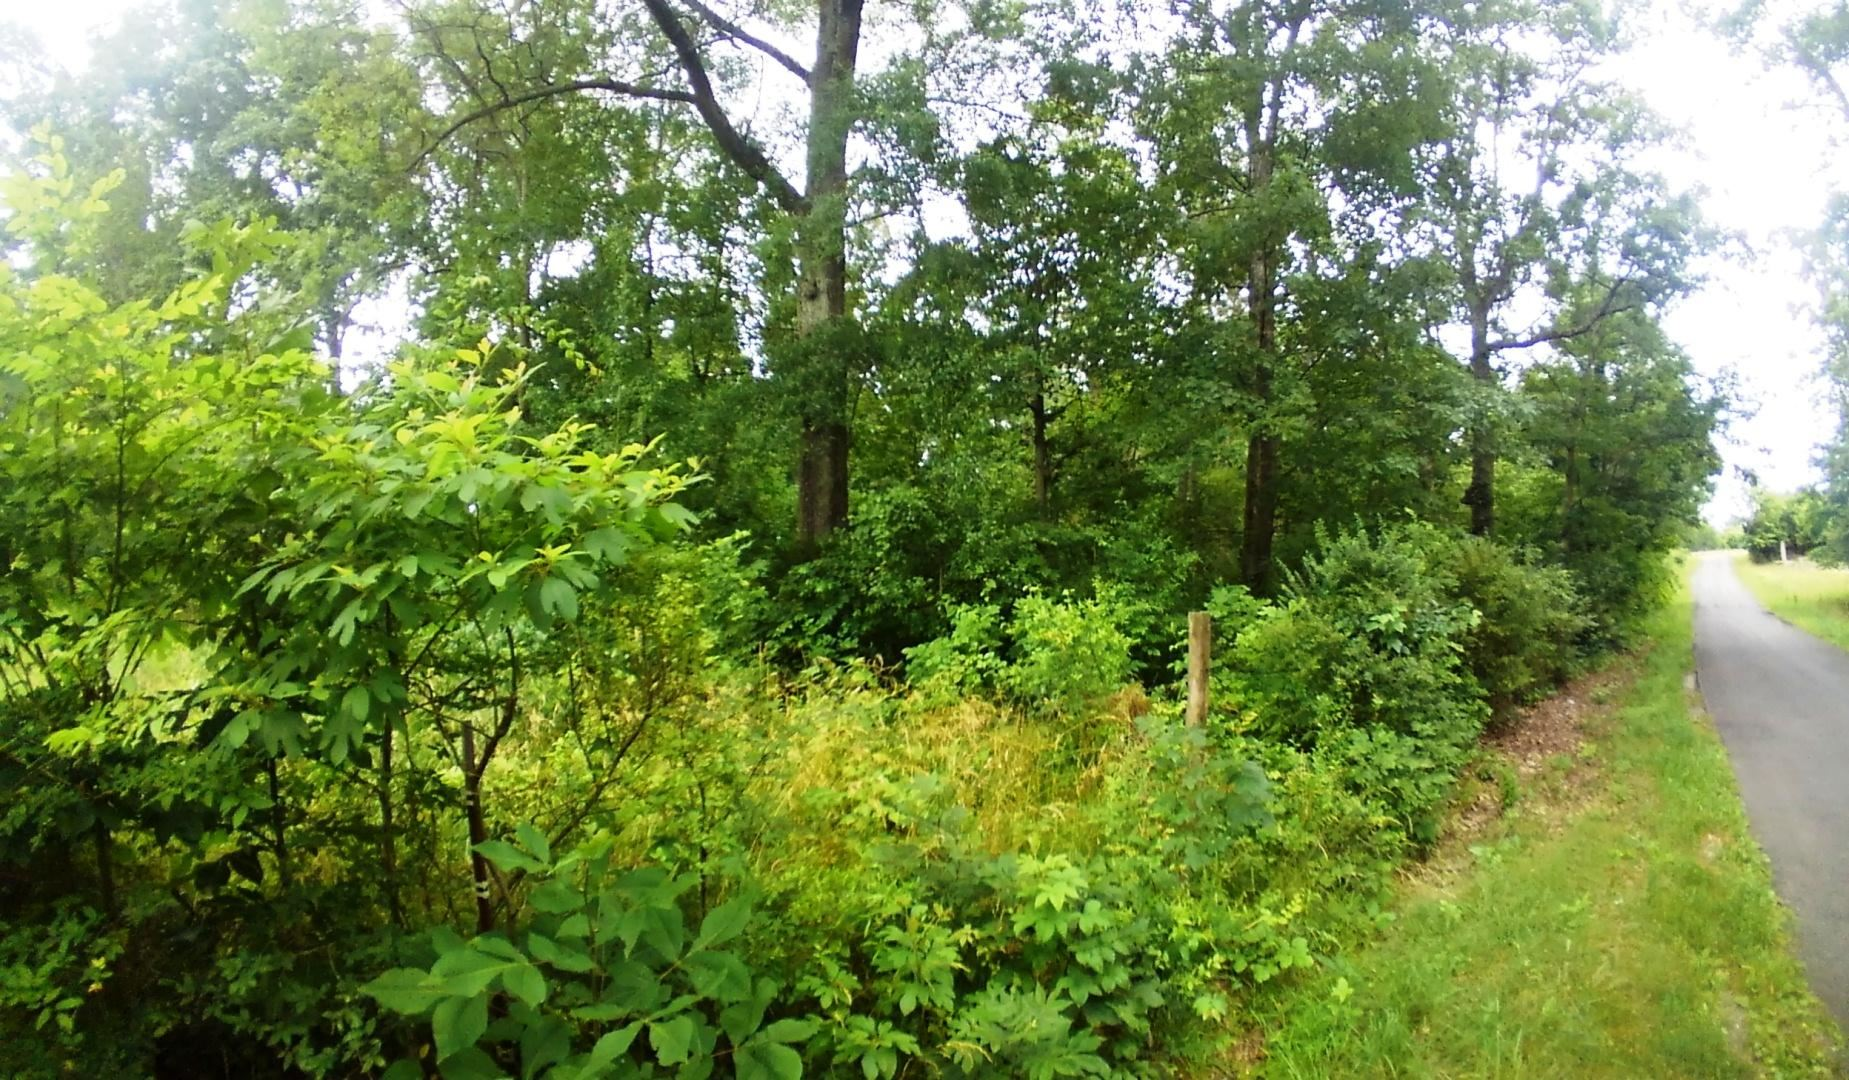 Photo of Lot 16 Smelcer Road, Mohawk, TN 37810 (MLS # 267382)